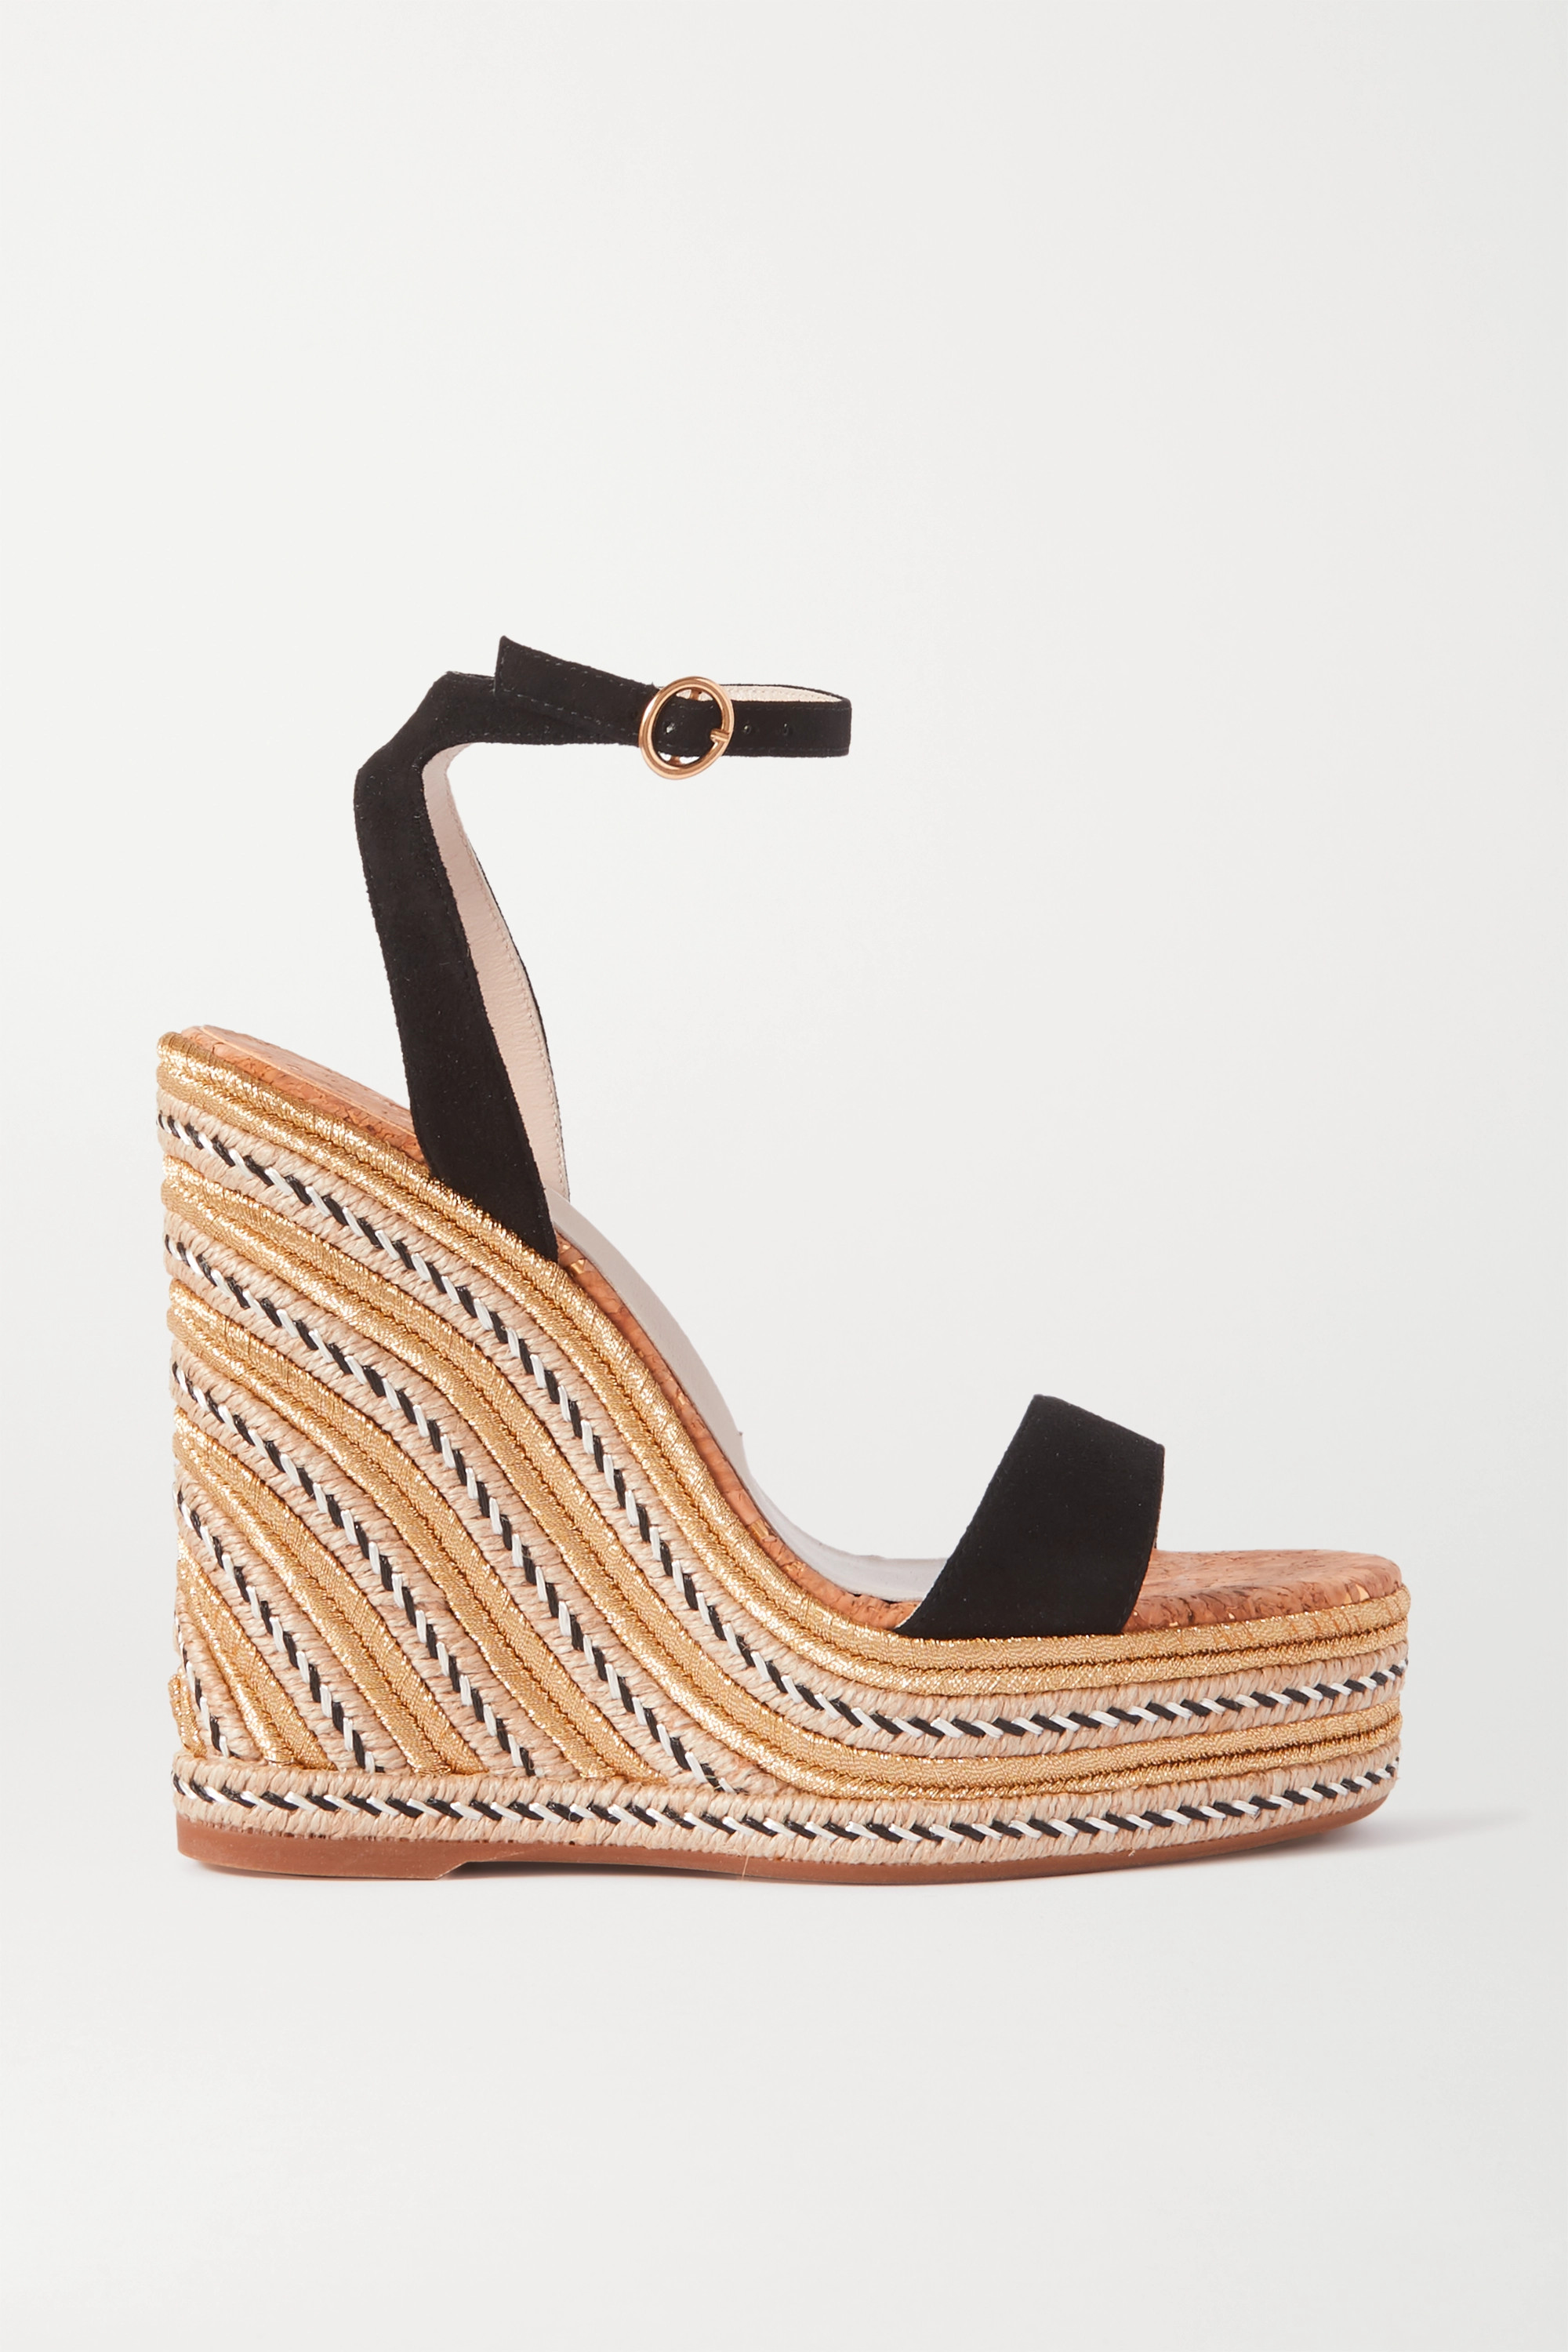 Sophia Webster Lucita suede espadrille wedge sandals